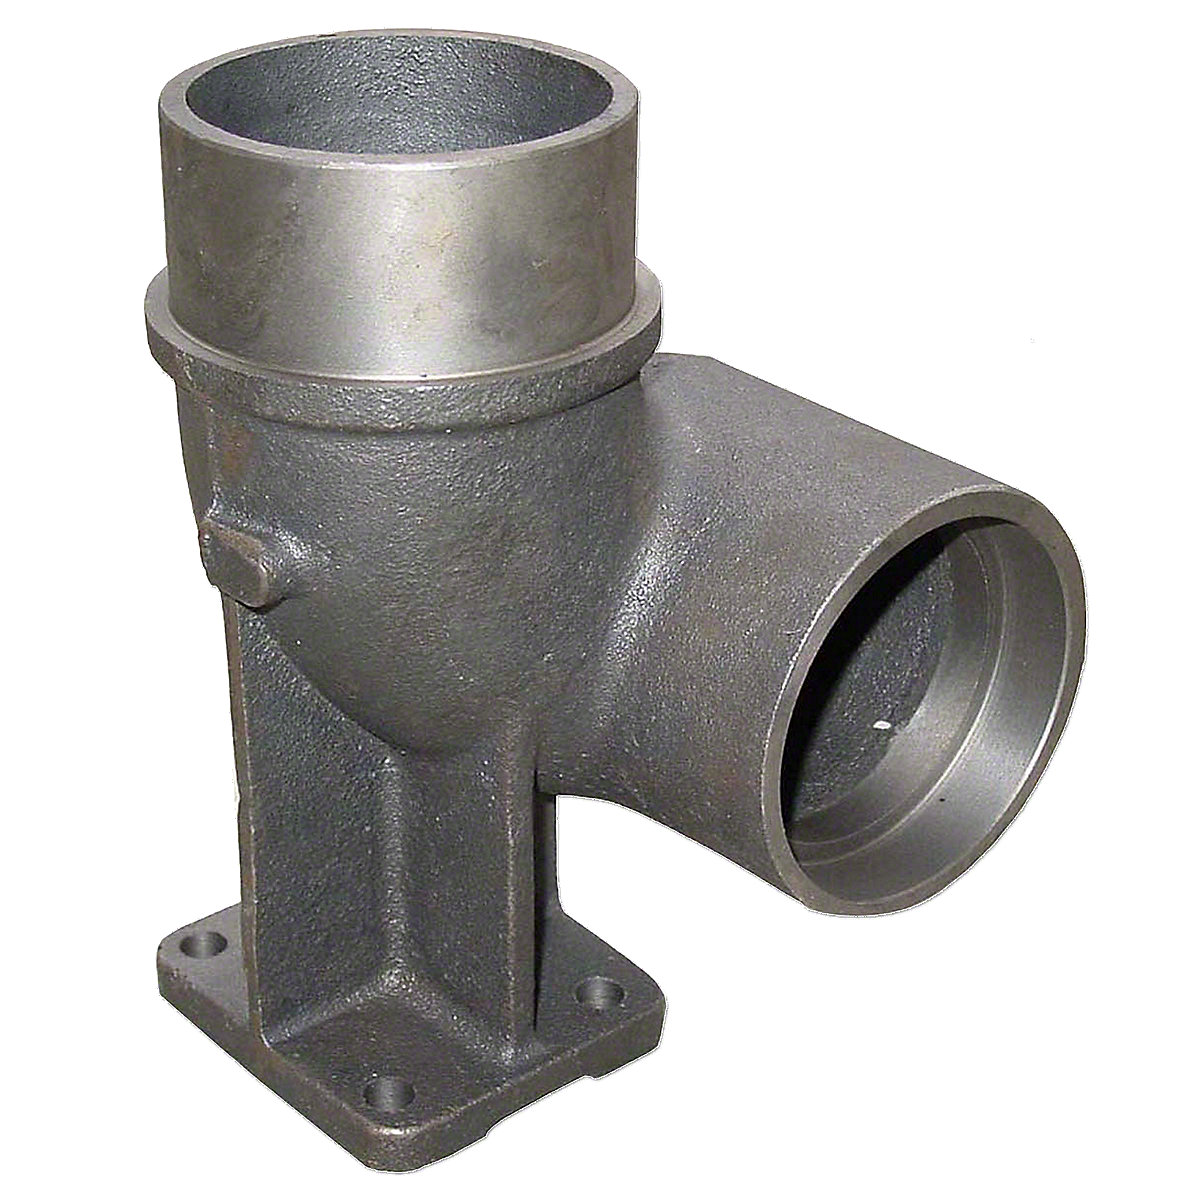 Turbo Manifold Elbow For Massey Ferguson: 1105, 1135.